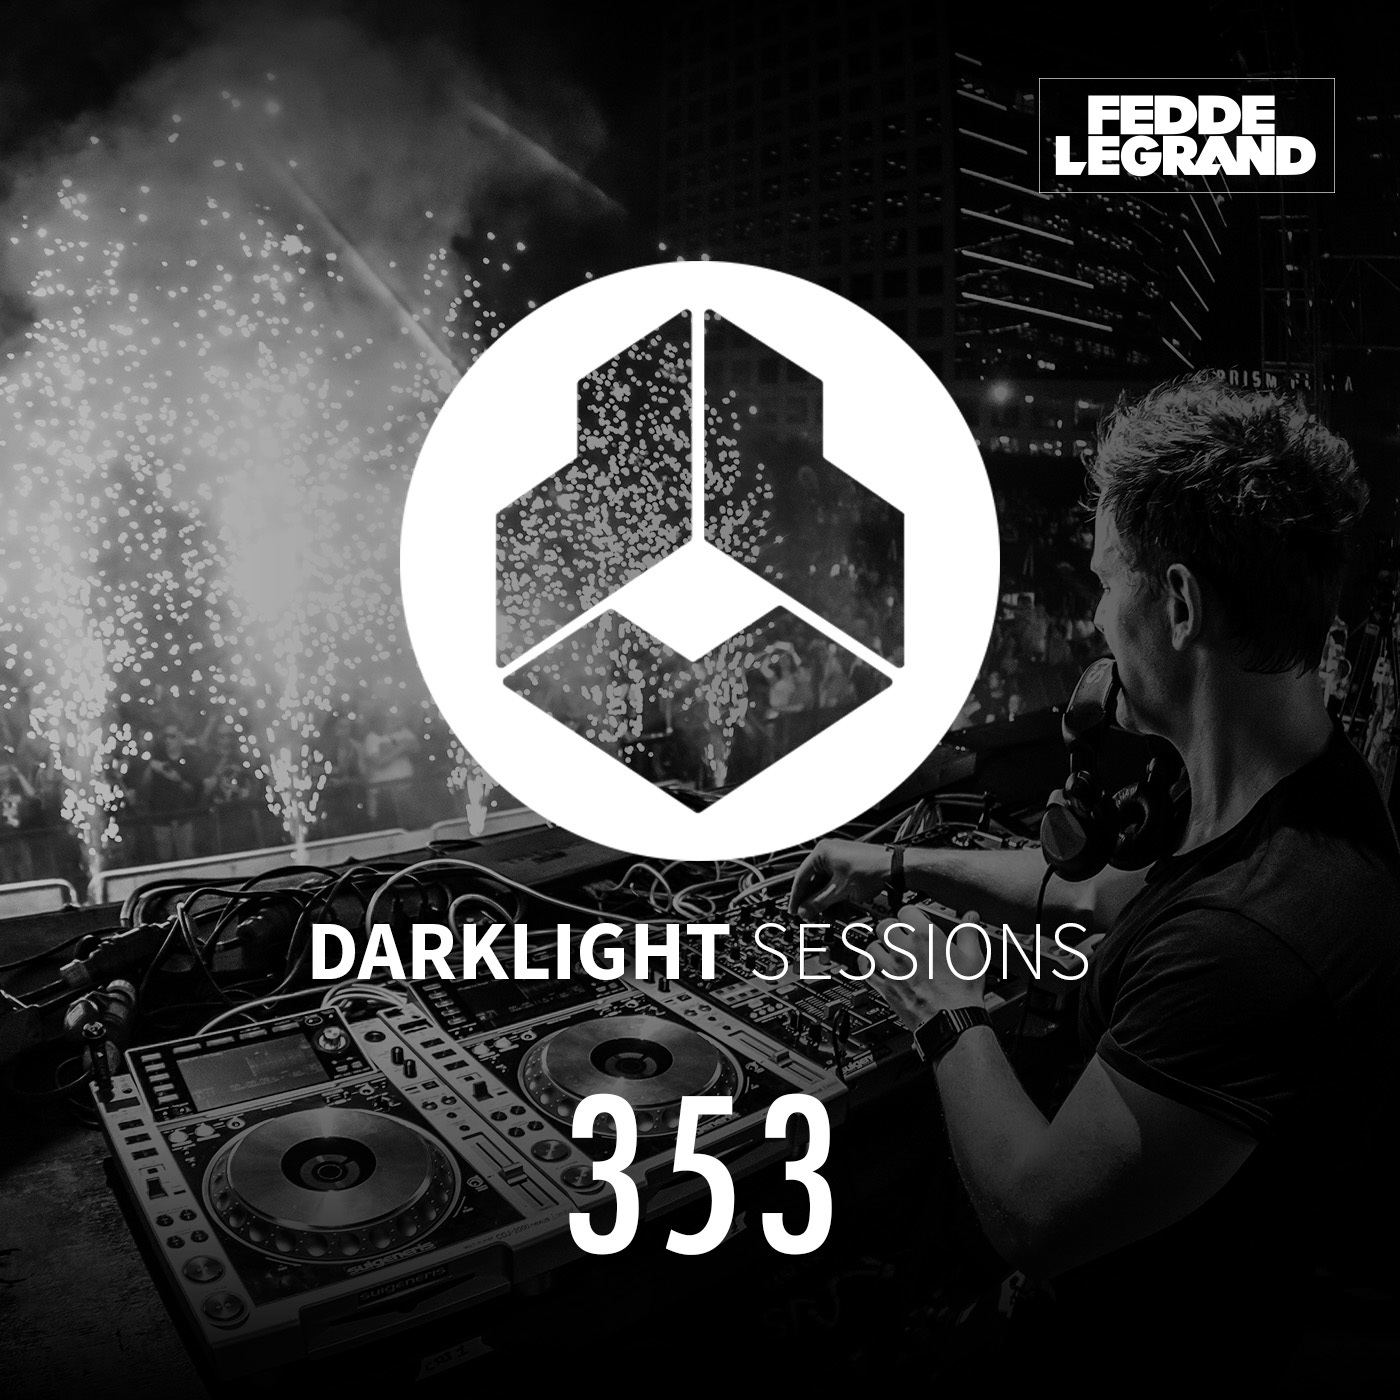 Darklight Sessions 353